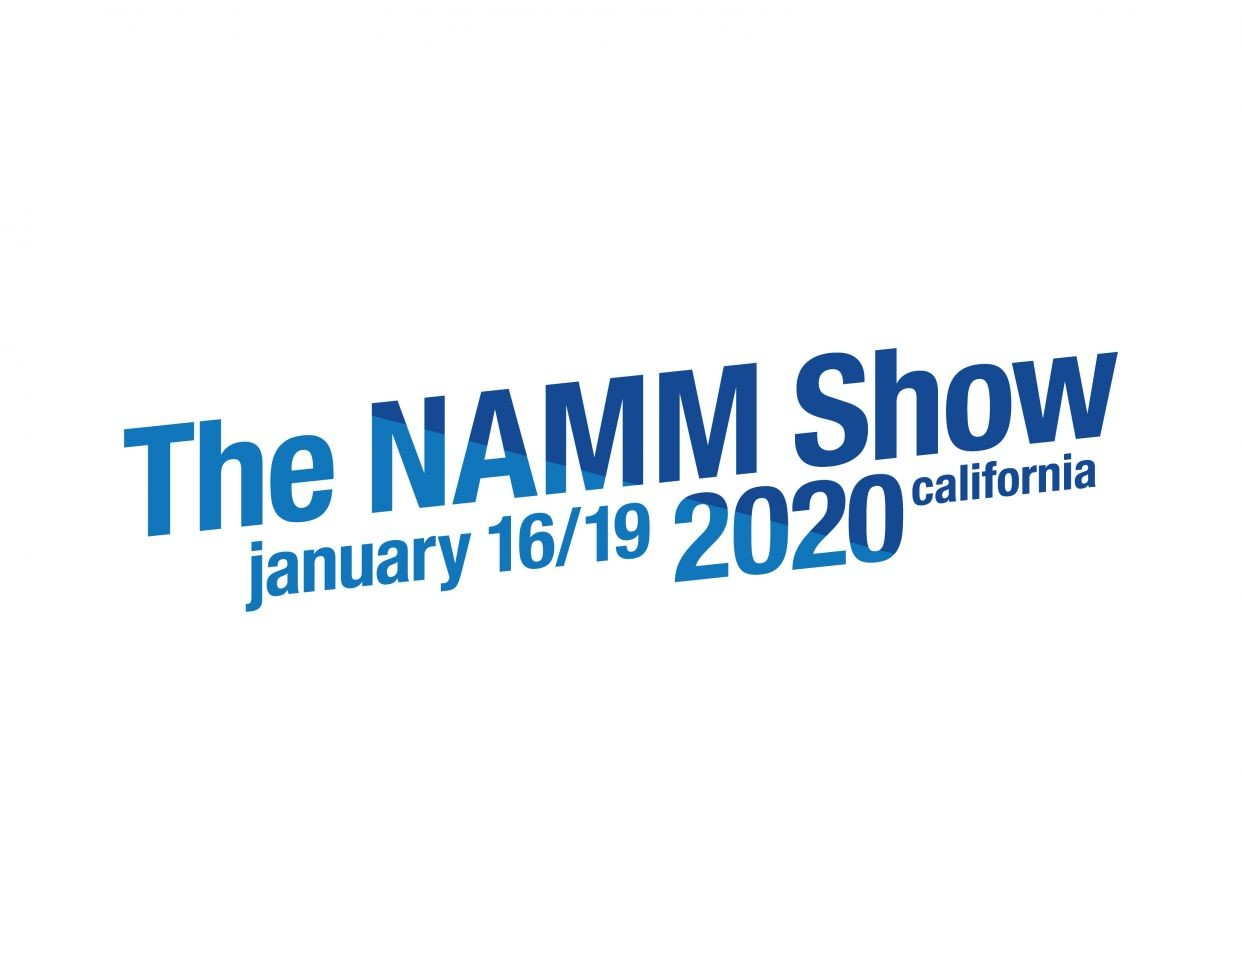 MIDI 2.0 at the 2020 NAMM Show